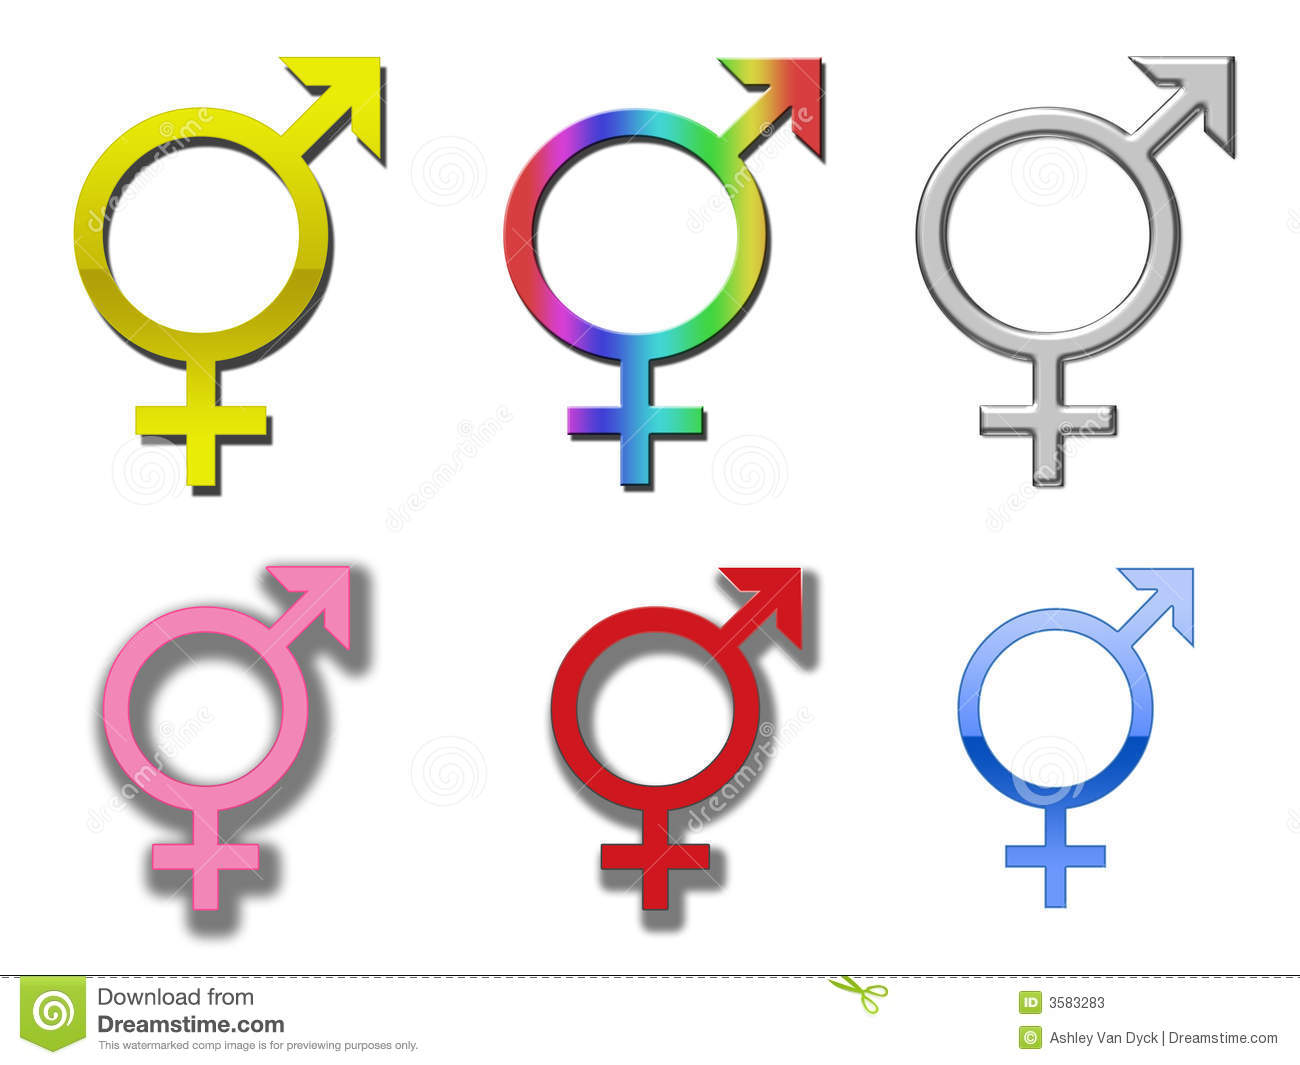 selection of different colored diversity/trans-gender symbols.